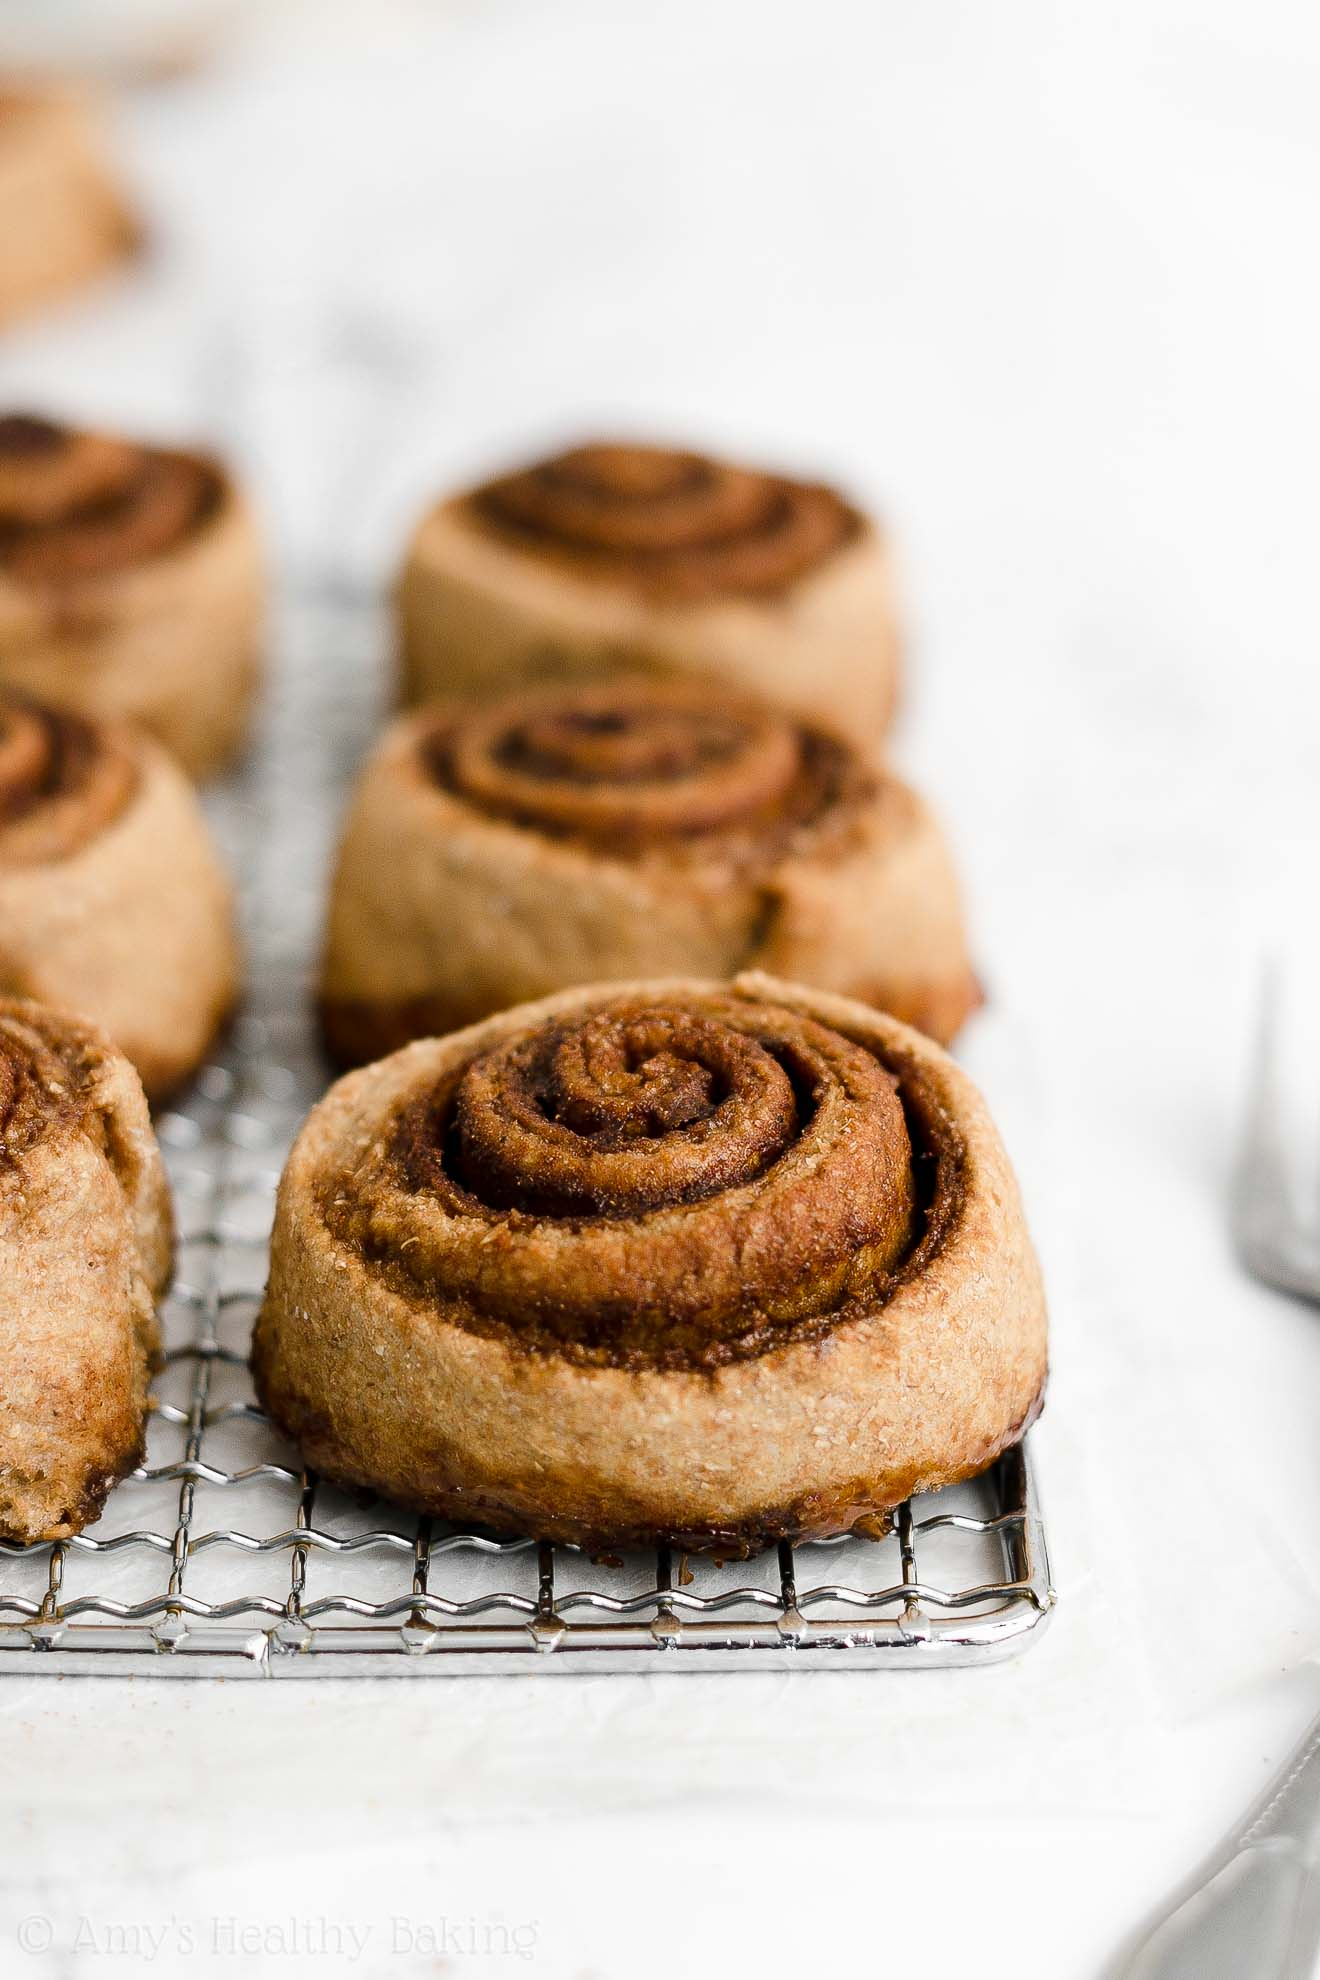 ULTIMATE Best Ever Healthy Whole Grain Low Calorie Cinnamon Rolls From Scratch